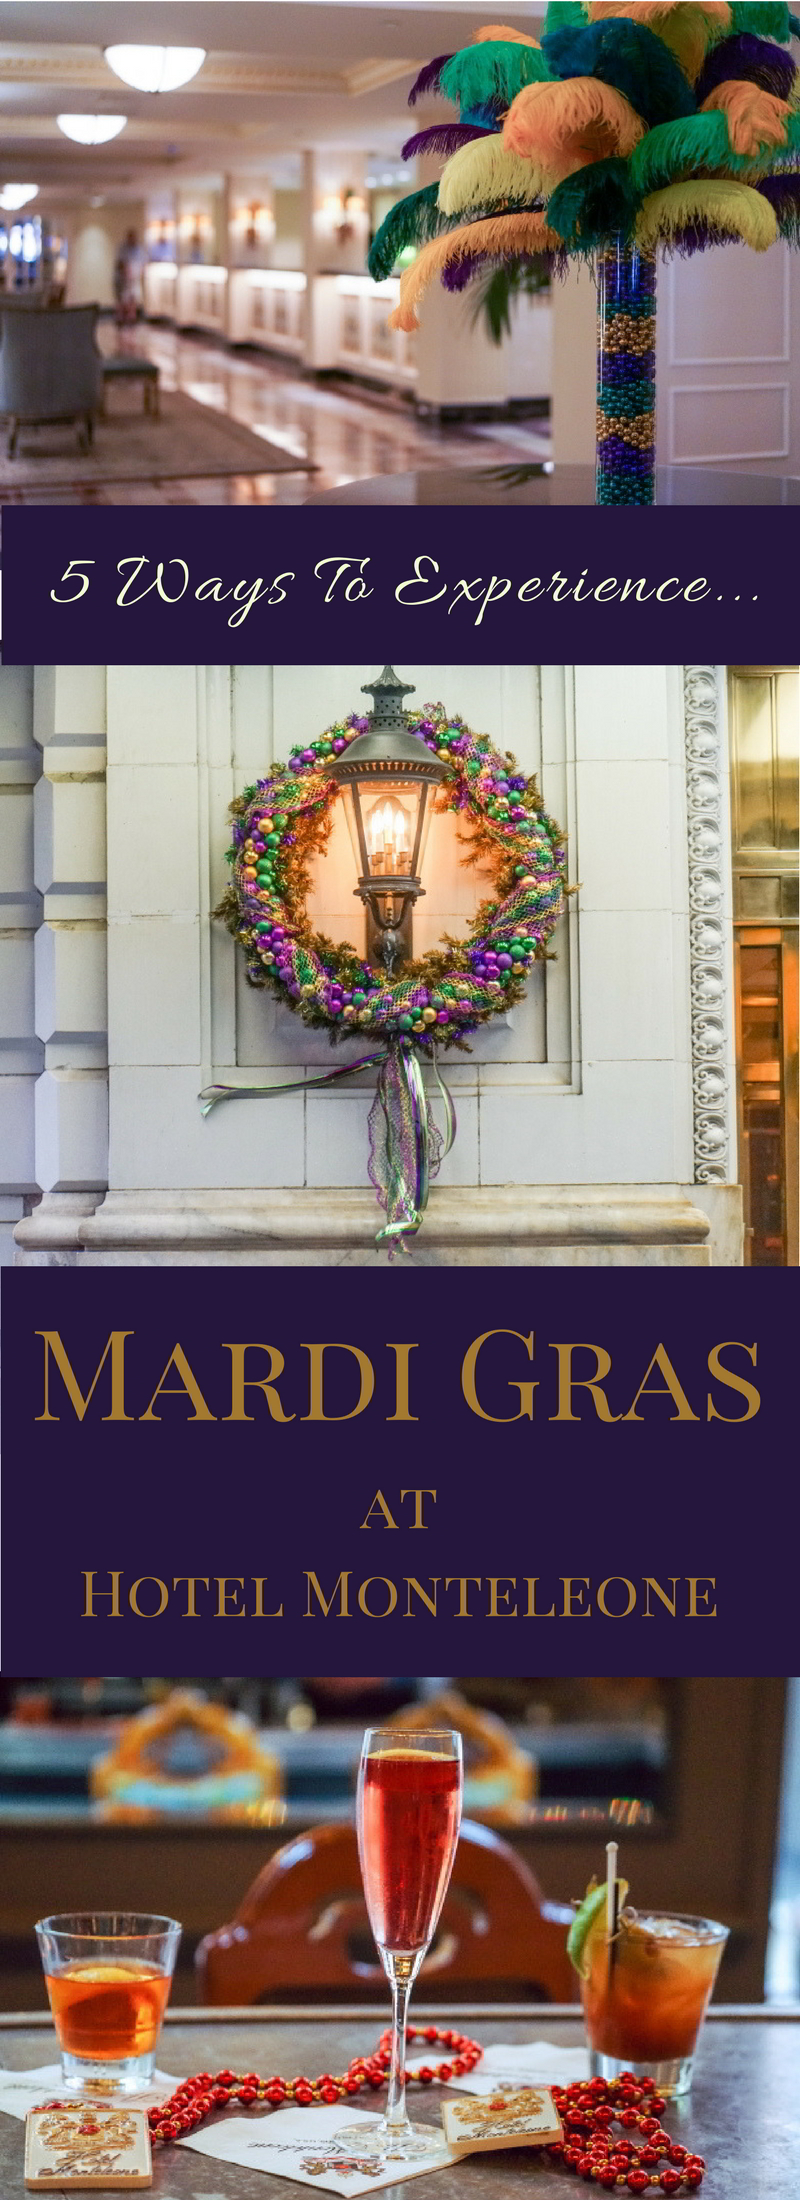 You won't need to travel far and wide to experience Mardi Gras in New Orleans. Check out 5 ways to experience Mardi Gras at Hotel Monteleone.